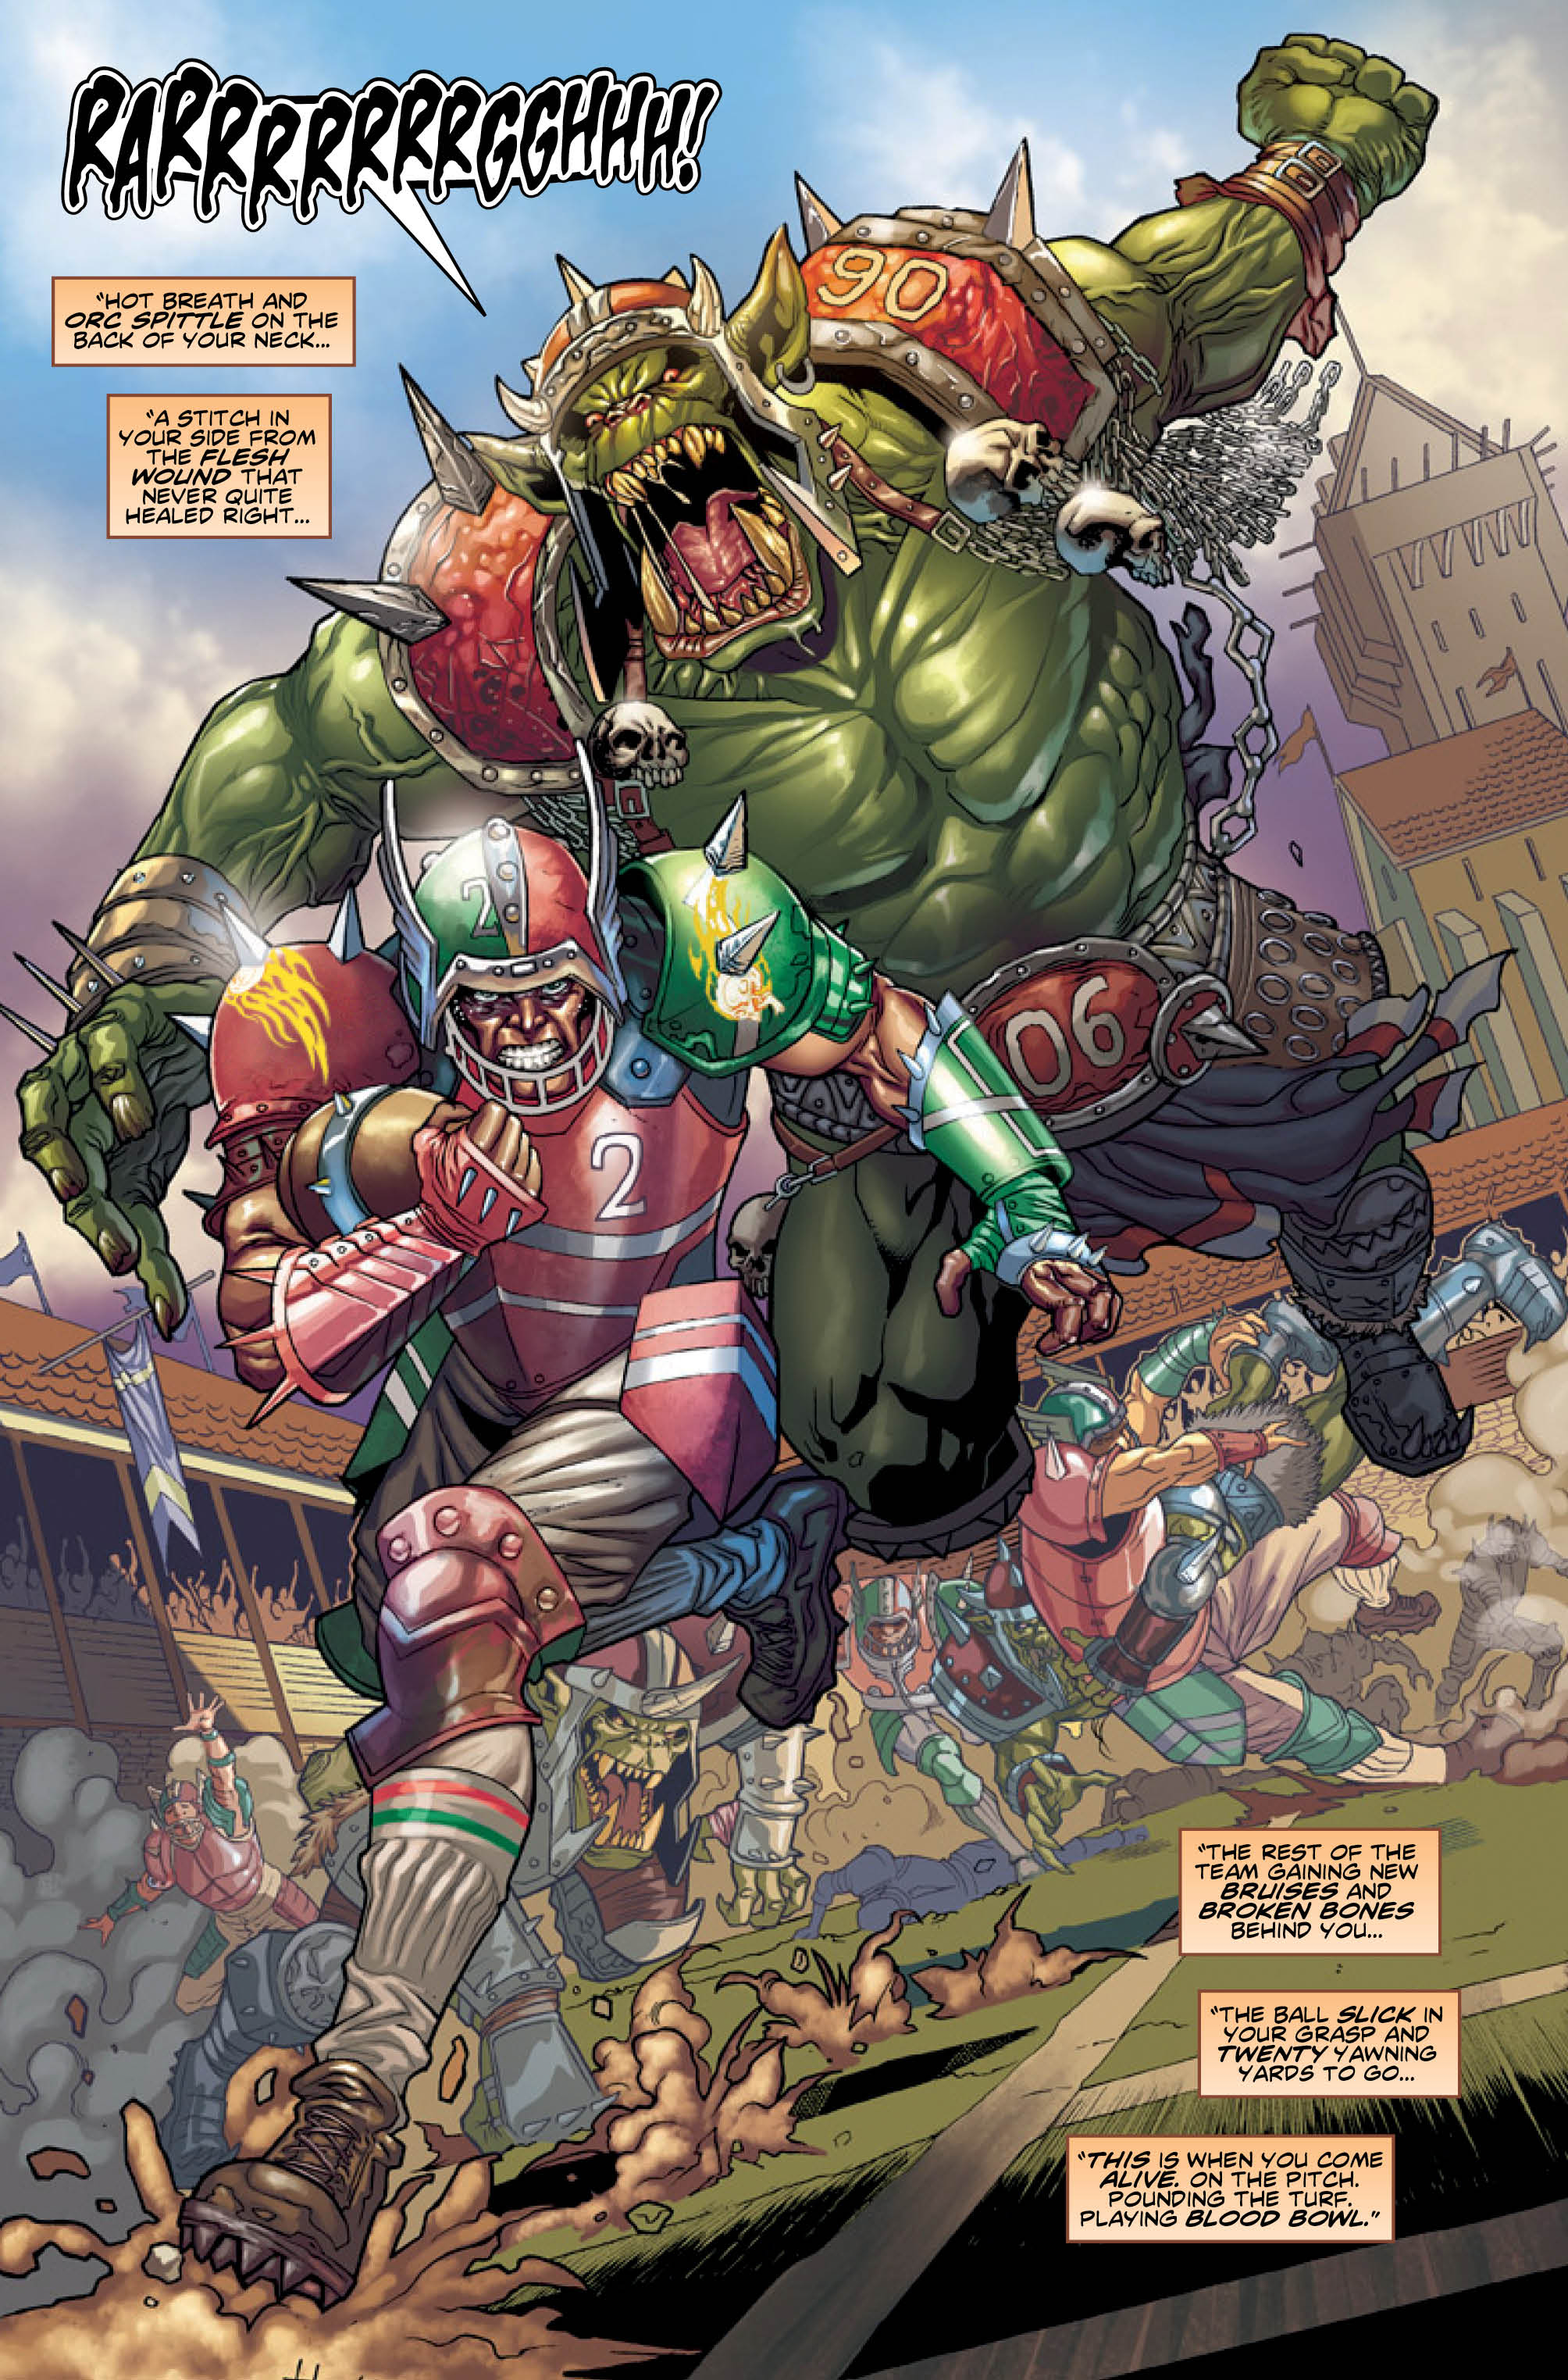 Blood Bowl More Guts More Glory Comic Aims For A May 10 Release GAMING TREND